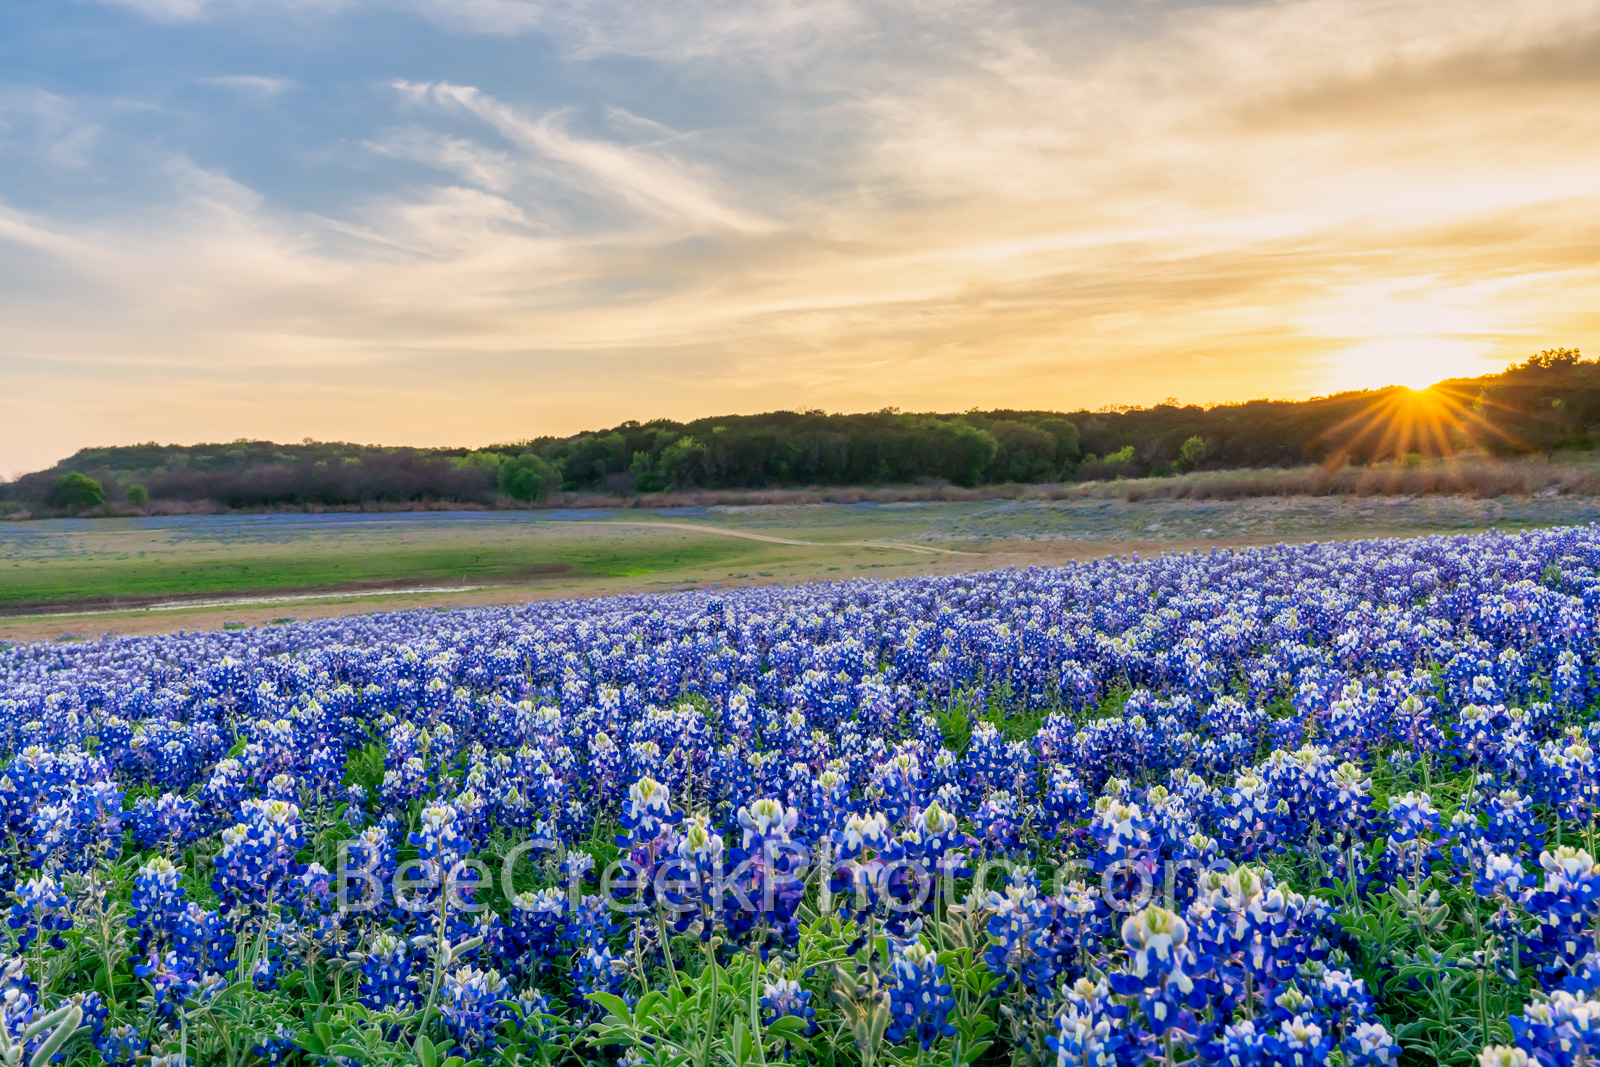 Bluebonnets at the Park Sunset - The Texas hill country dry river bed came back to life again after the waters went down along...